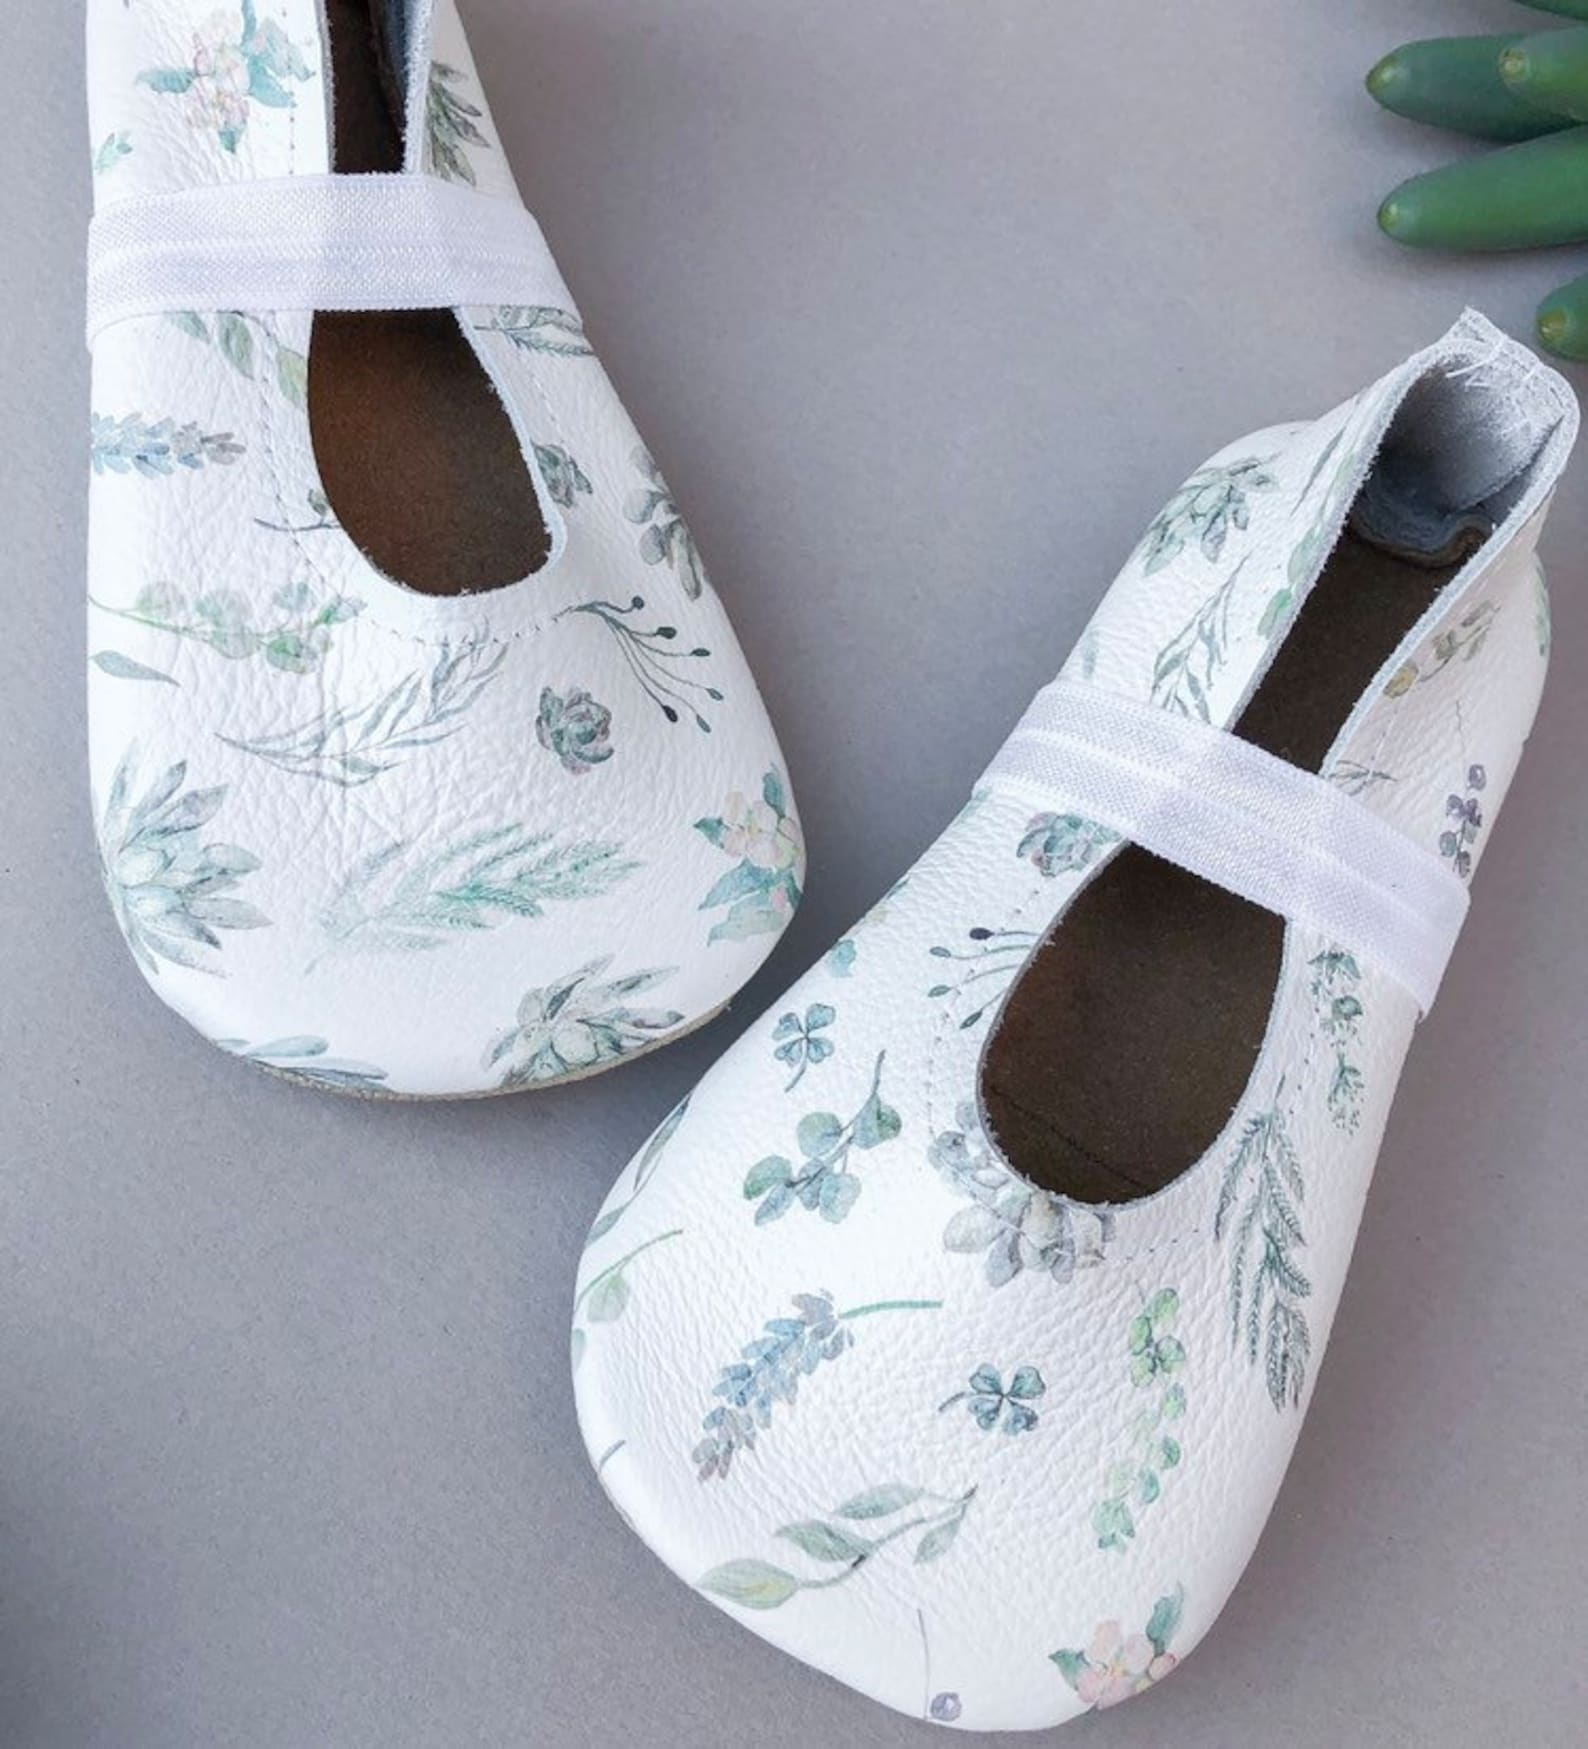 succulents ballet flats - white baby moccasins - genuine leather toddler shoes - boho baby outfit